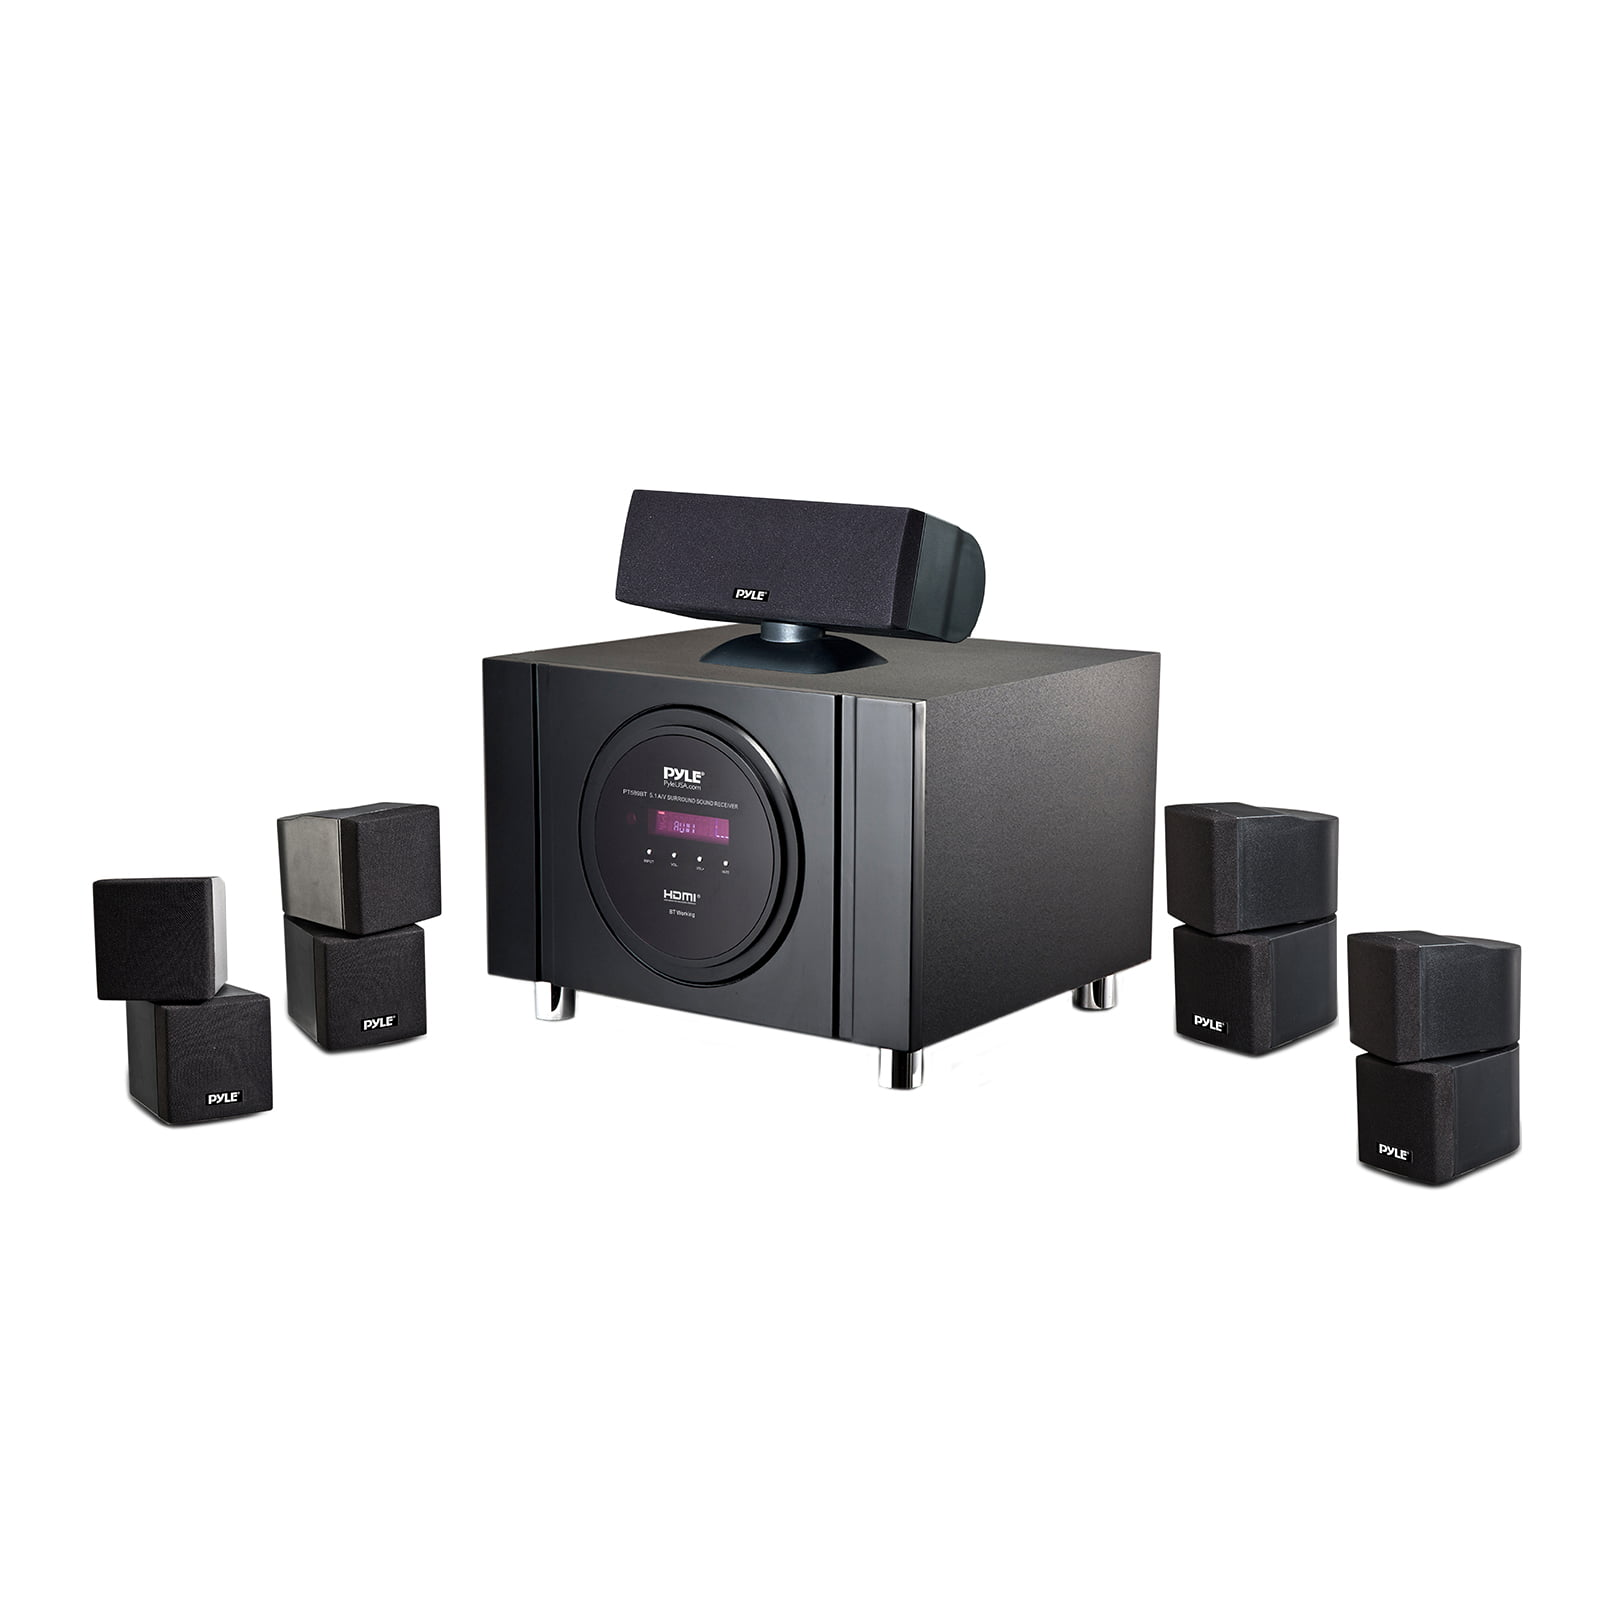 BT 5.1 Channel Home Theater System Surround Sound Speakers & A V Amplifier Receiver, FM Radio by Pyle